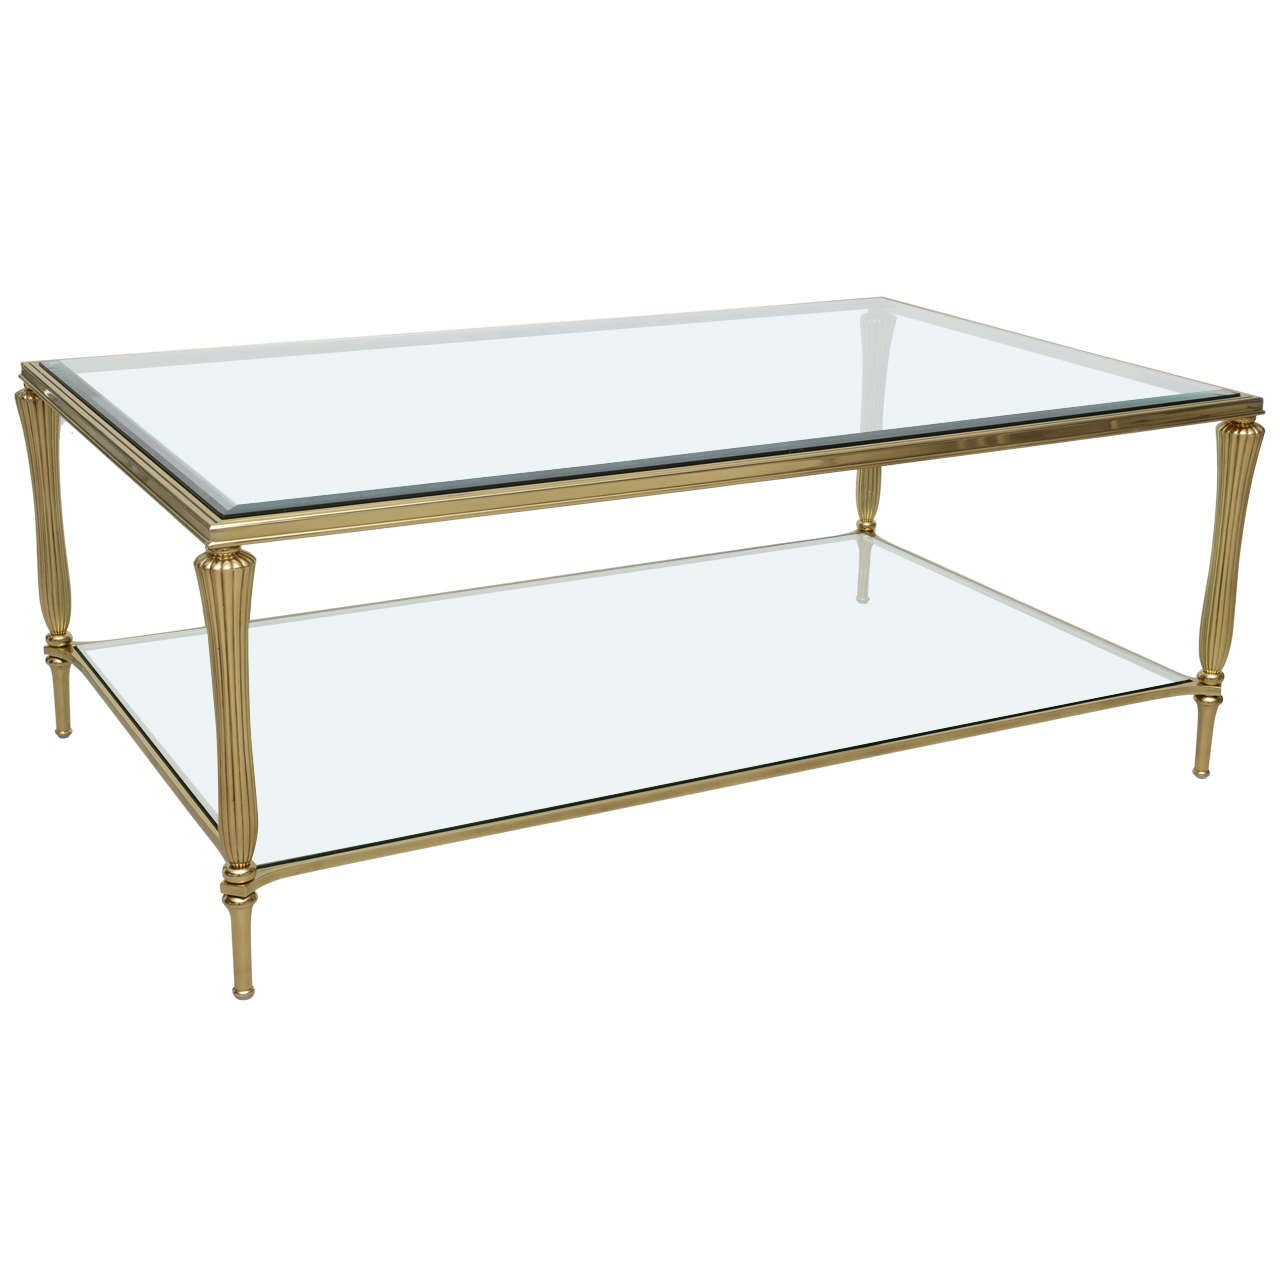 Vintage Brass And Glass Regency Style Coffee Table 1